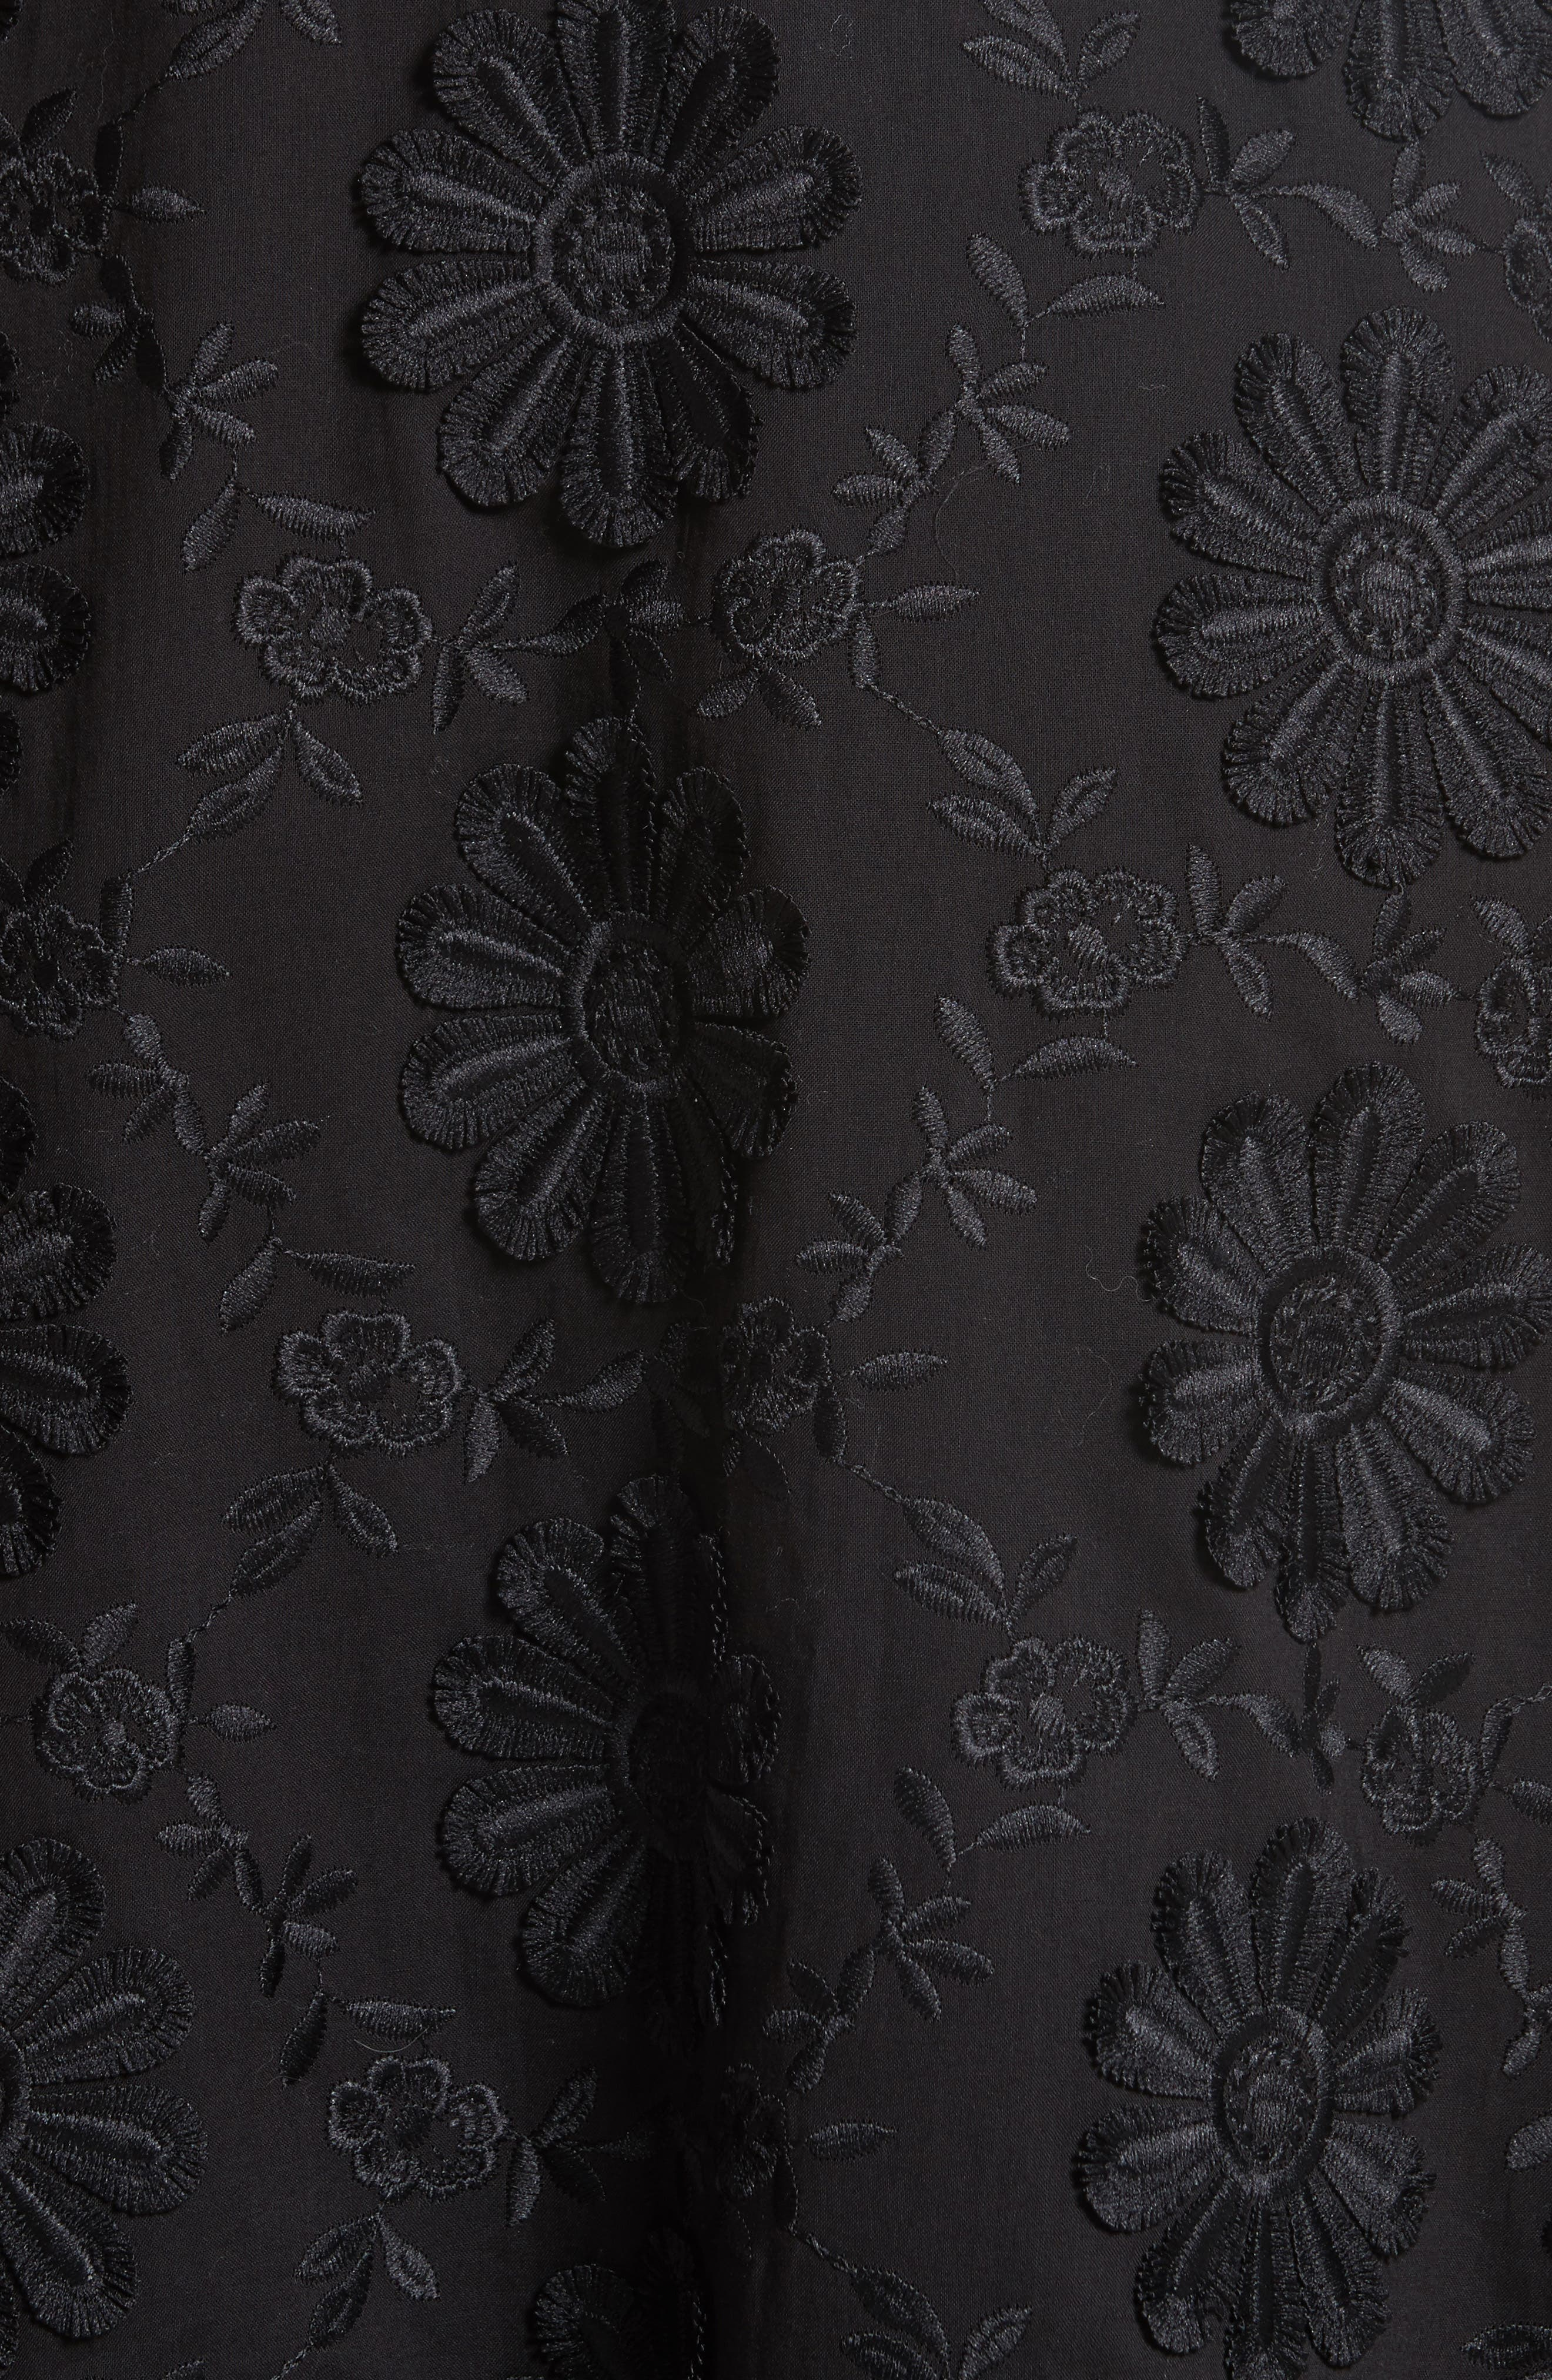 Floral Embroidered Dress,                             Alternate thumbnail 5, color,                             001